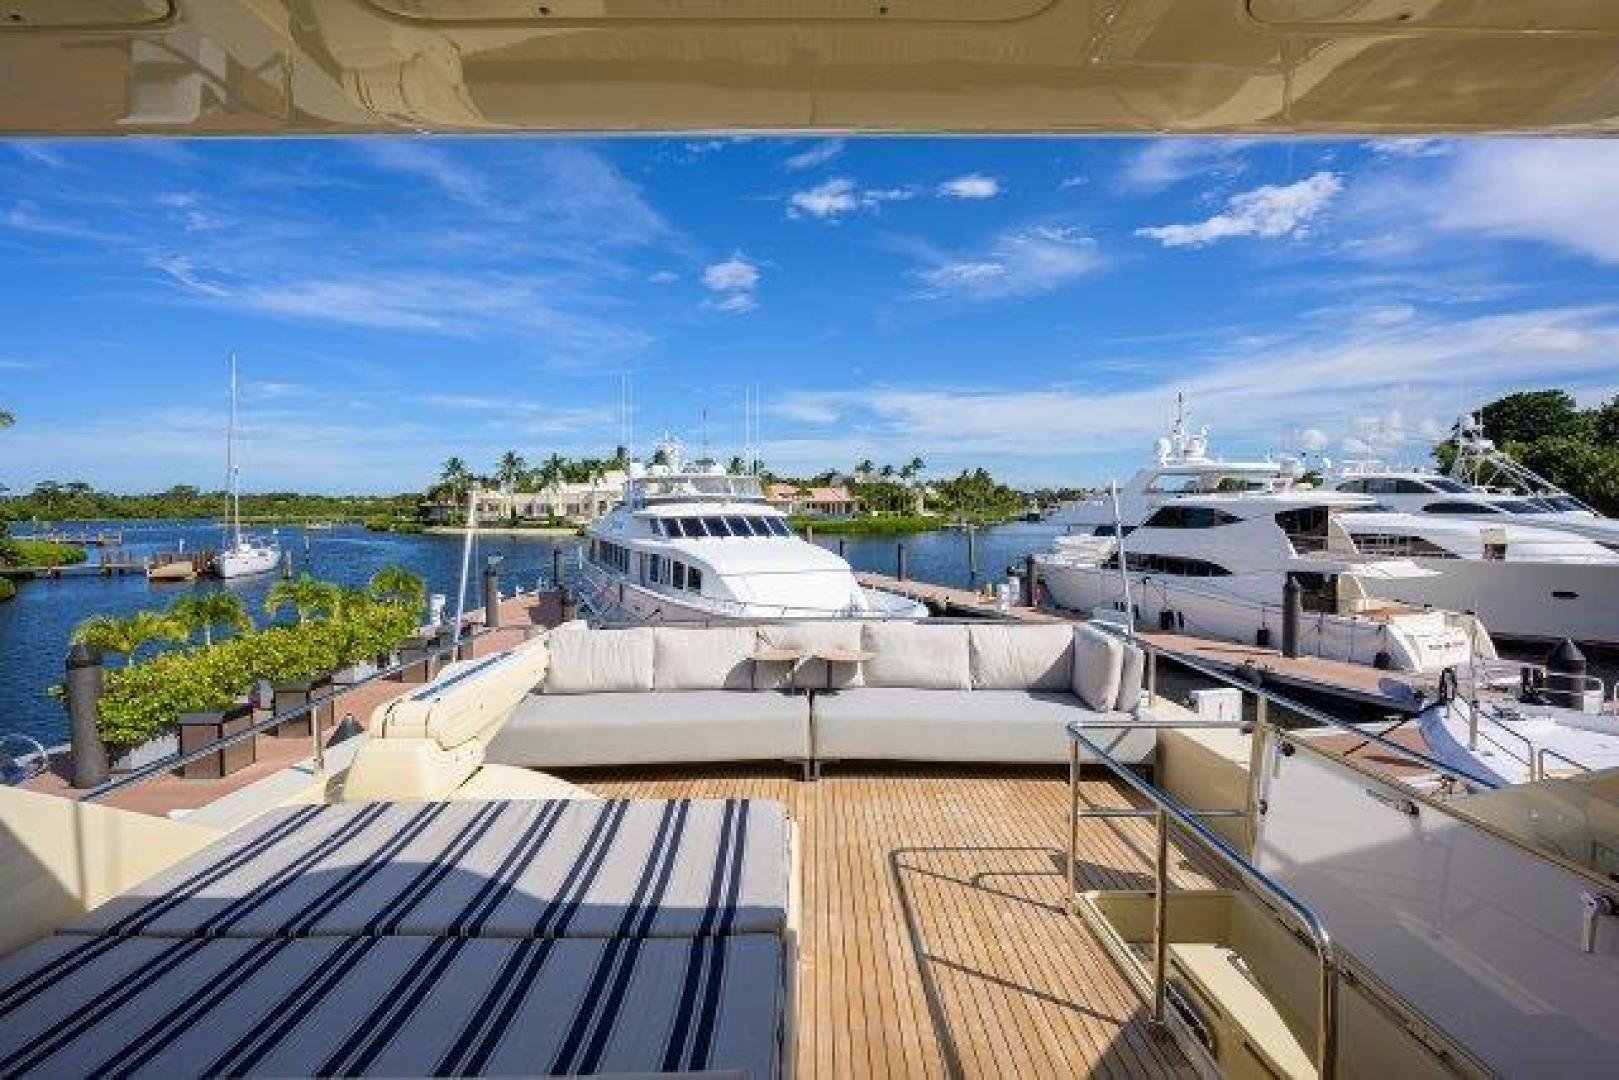 Ferretti Yachts-Altura 840 2010-MISS ALLIED Jupiter-Florida-United States-Bridge Deck-1518344 | Thumbnail